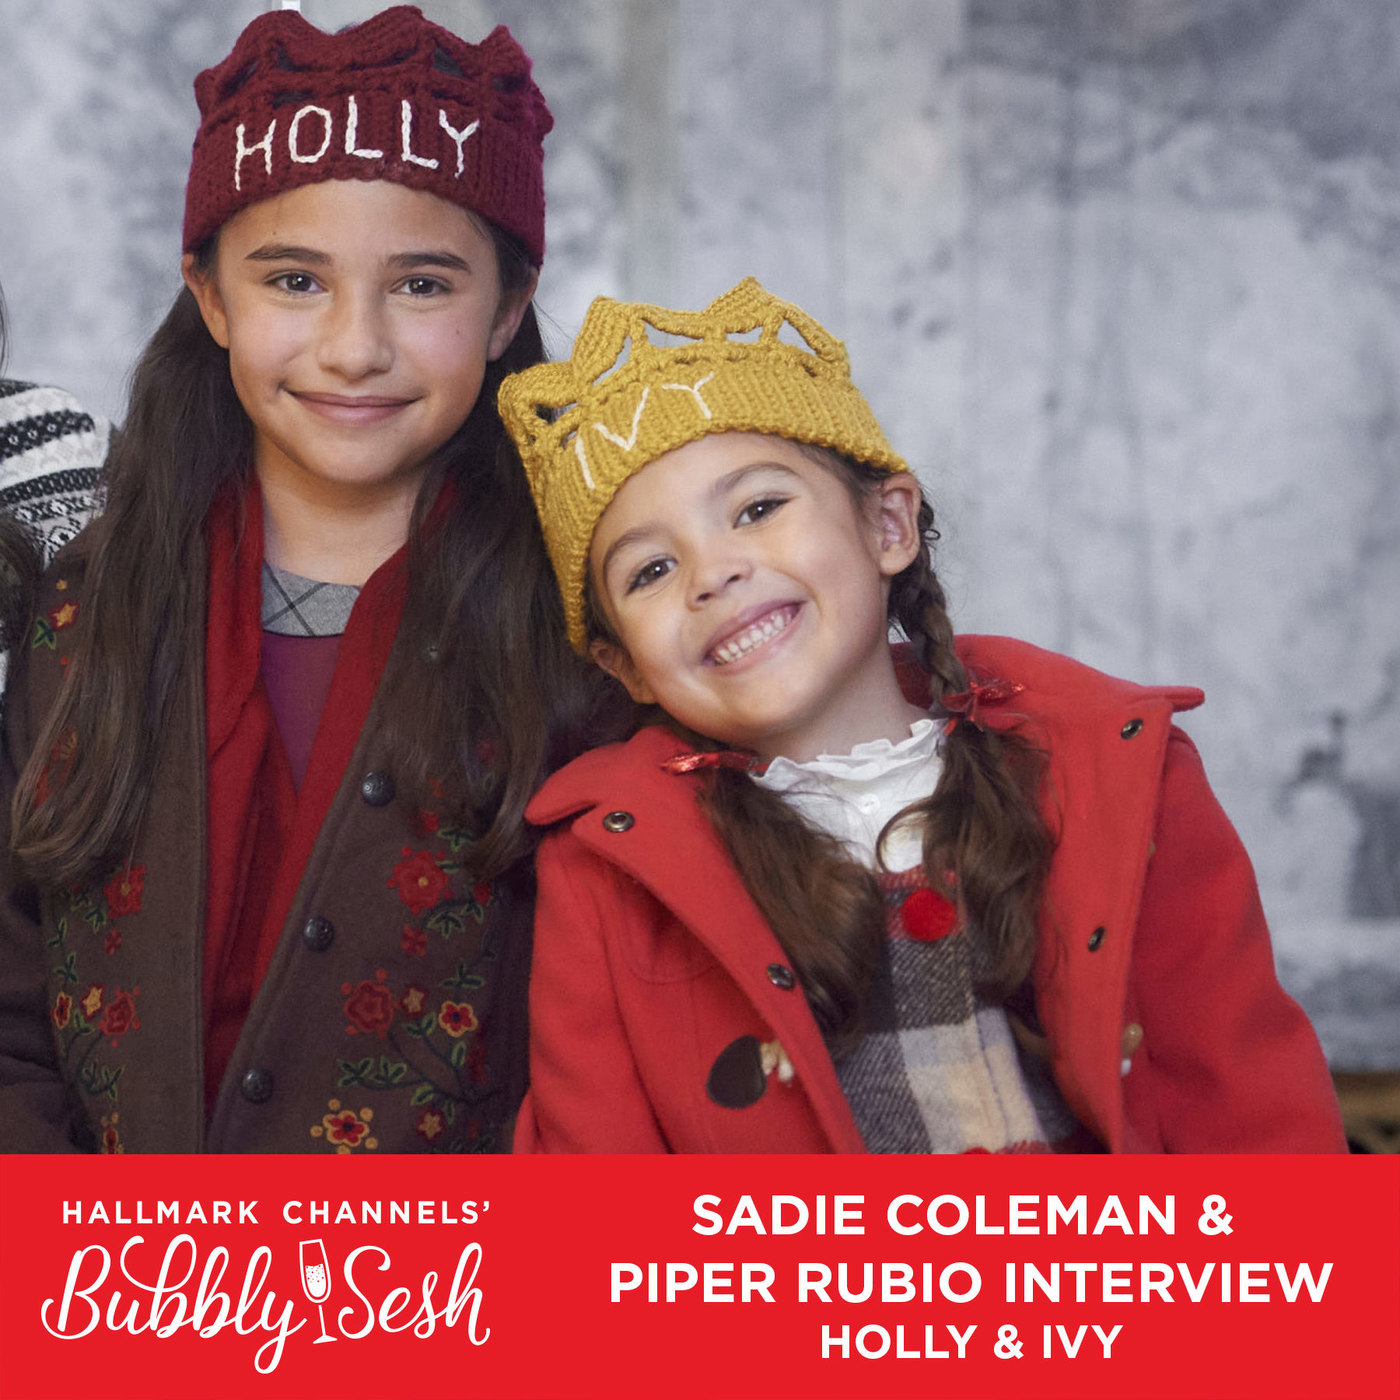 Sadie Coleman and Piper Rubio, Holly & Ivy